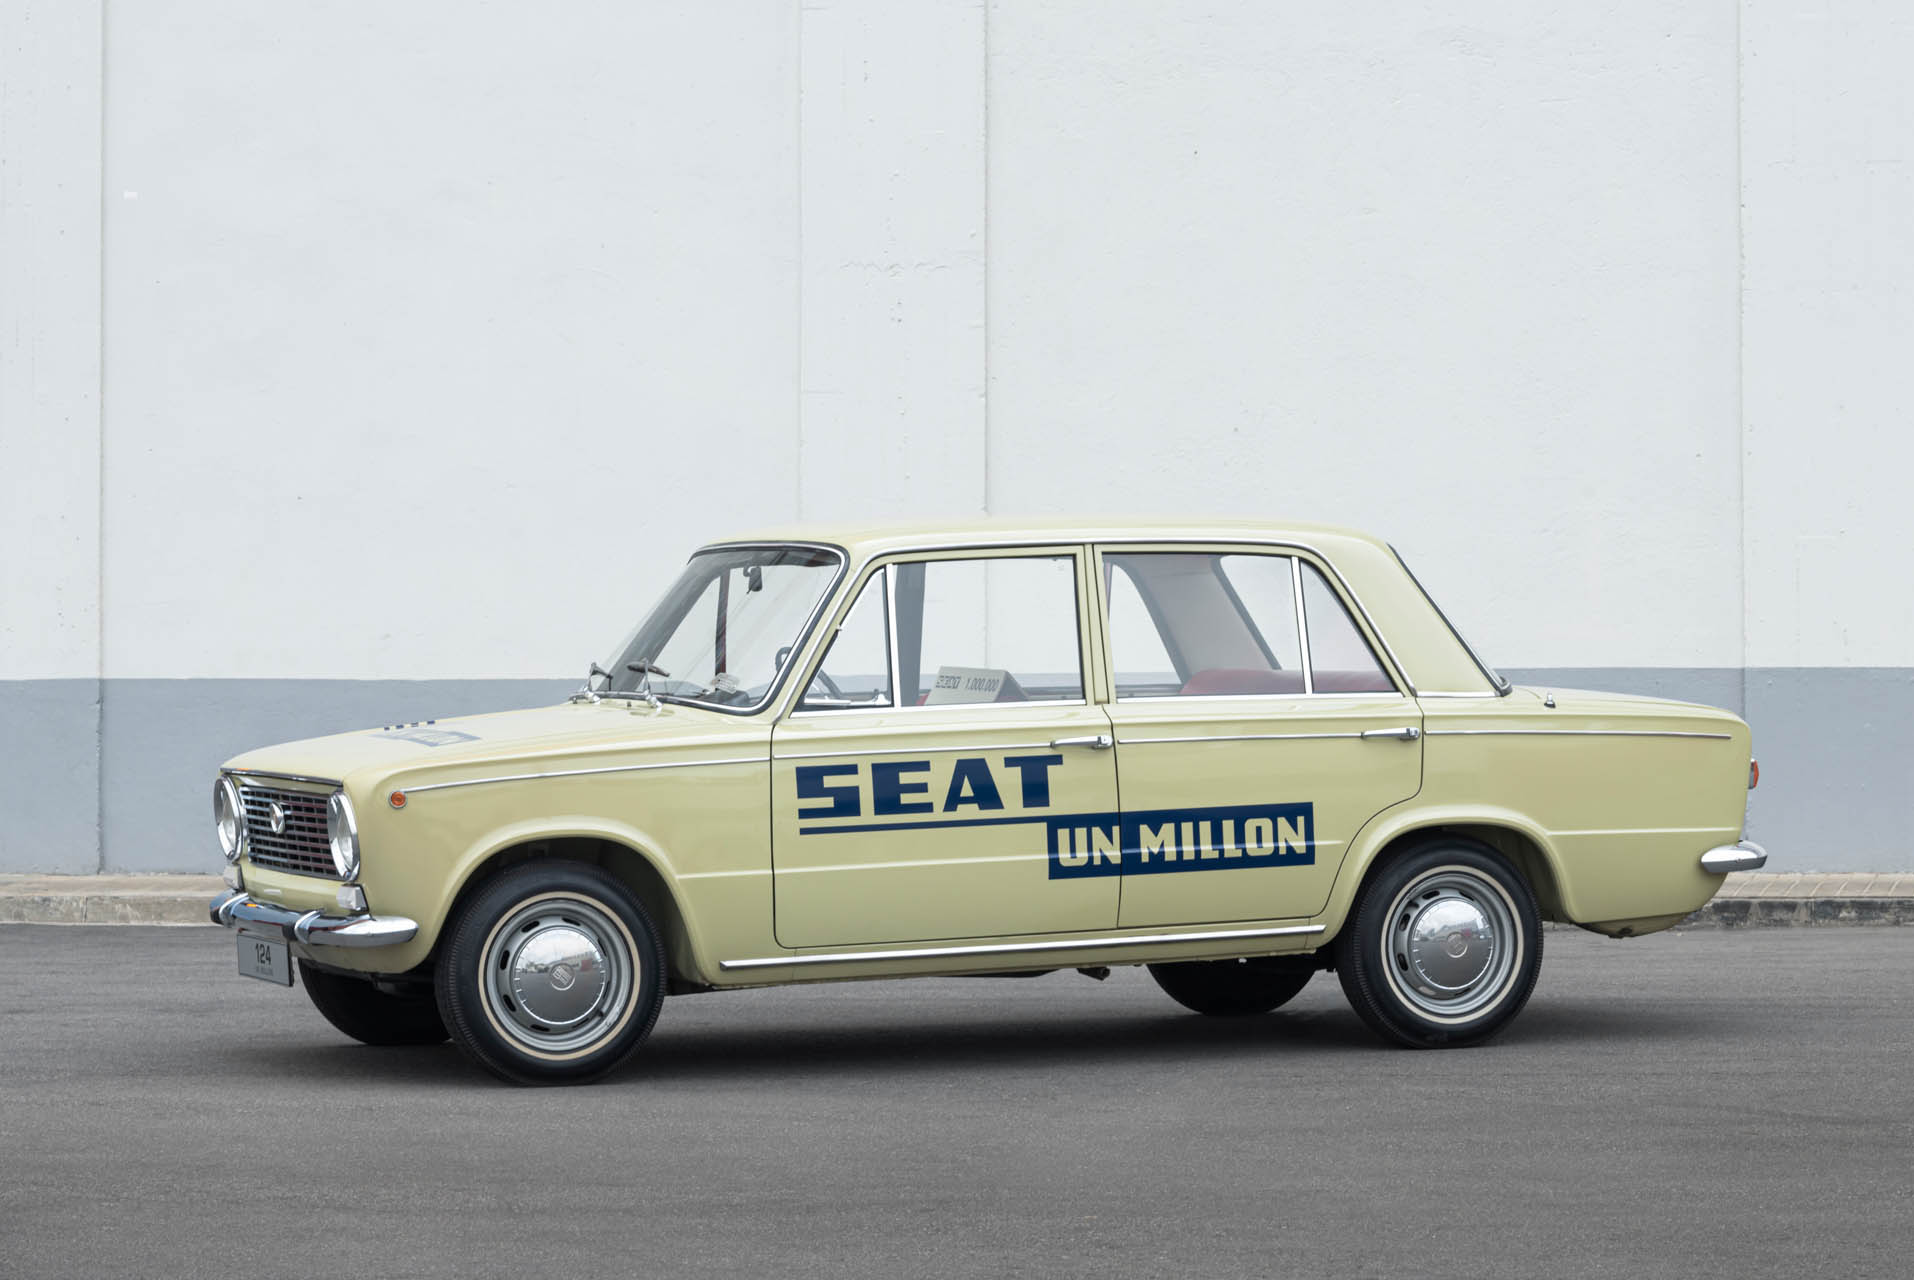 SEAT70years16specialcars10